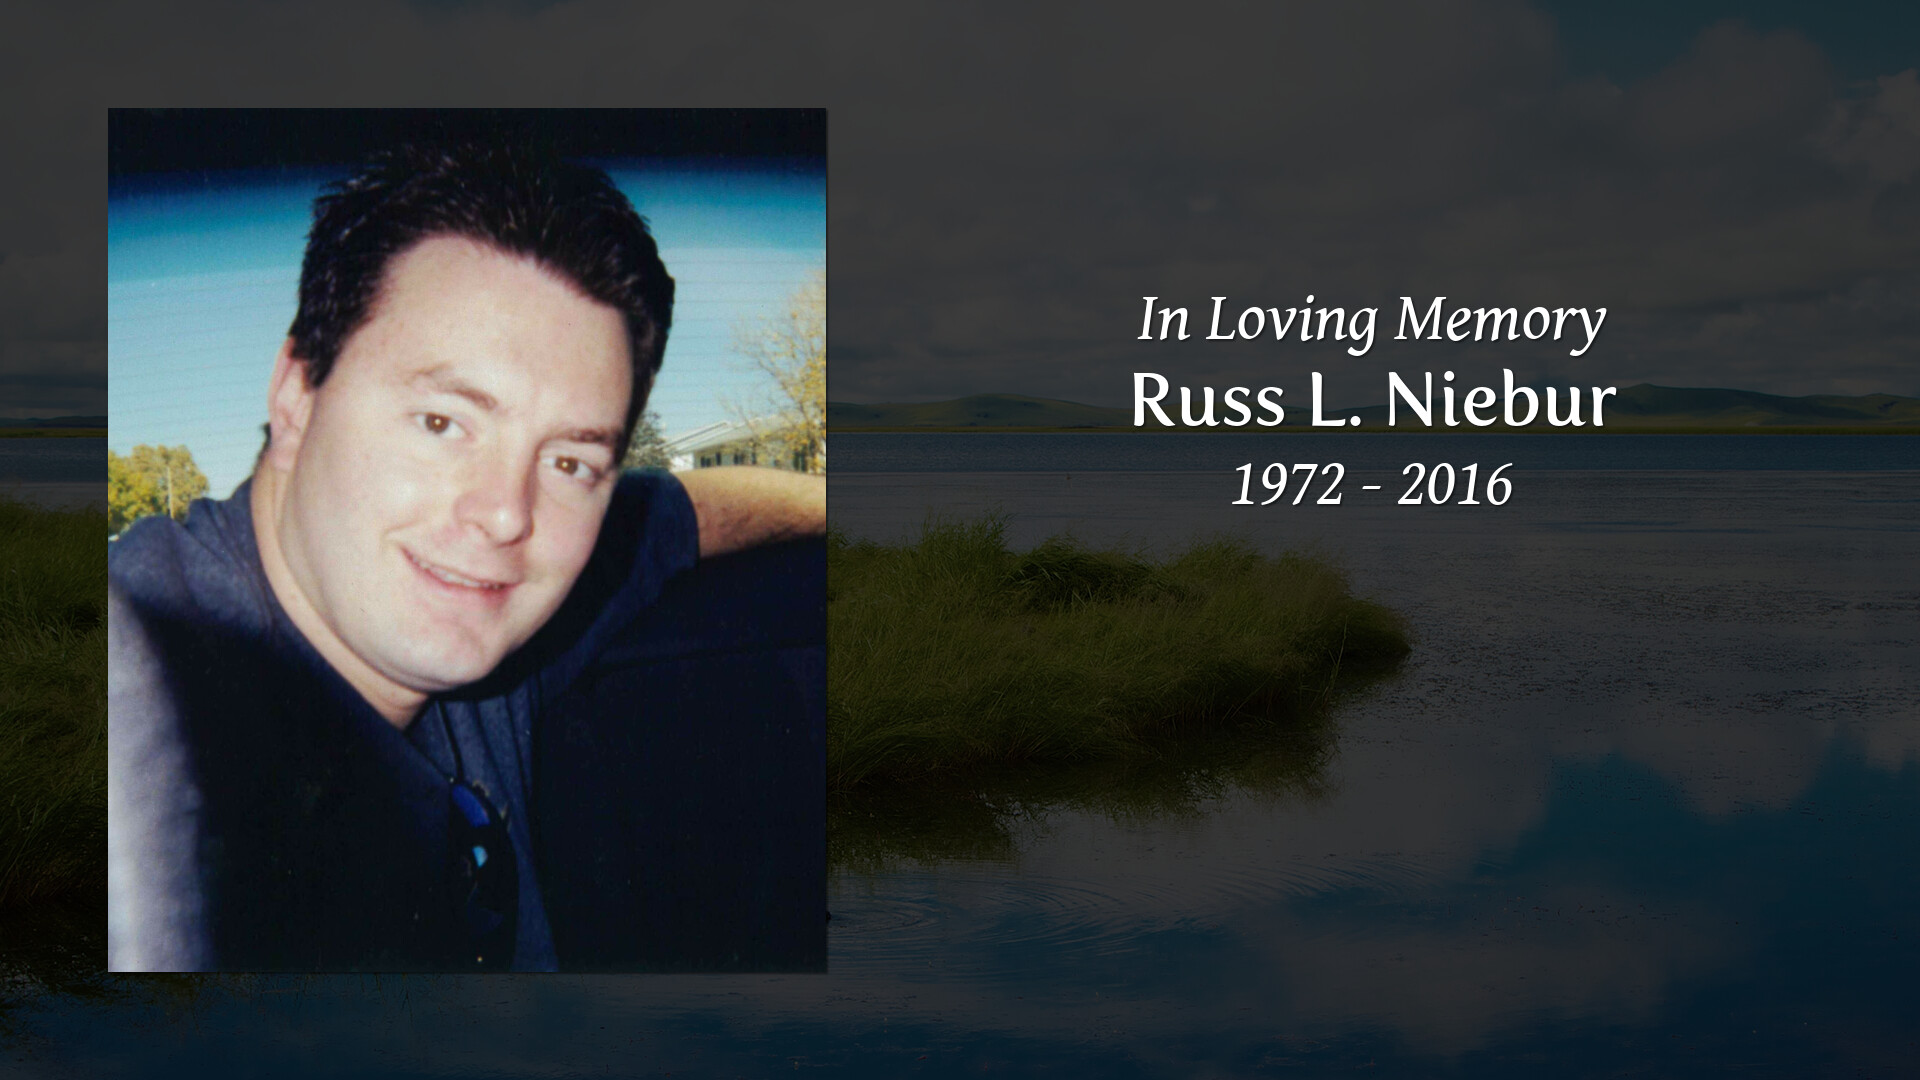 Obituary For Russell Russ Louis Niebur